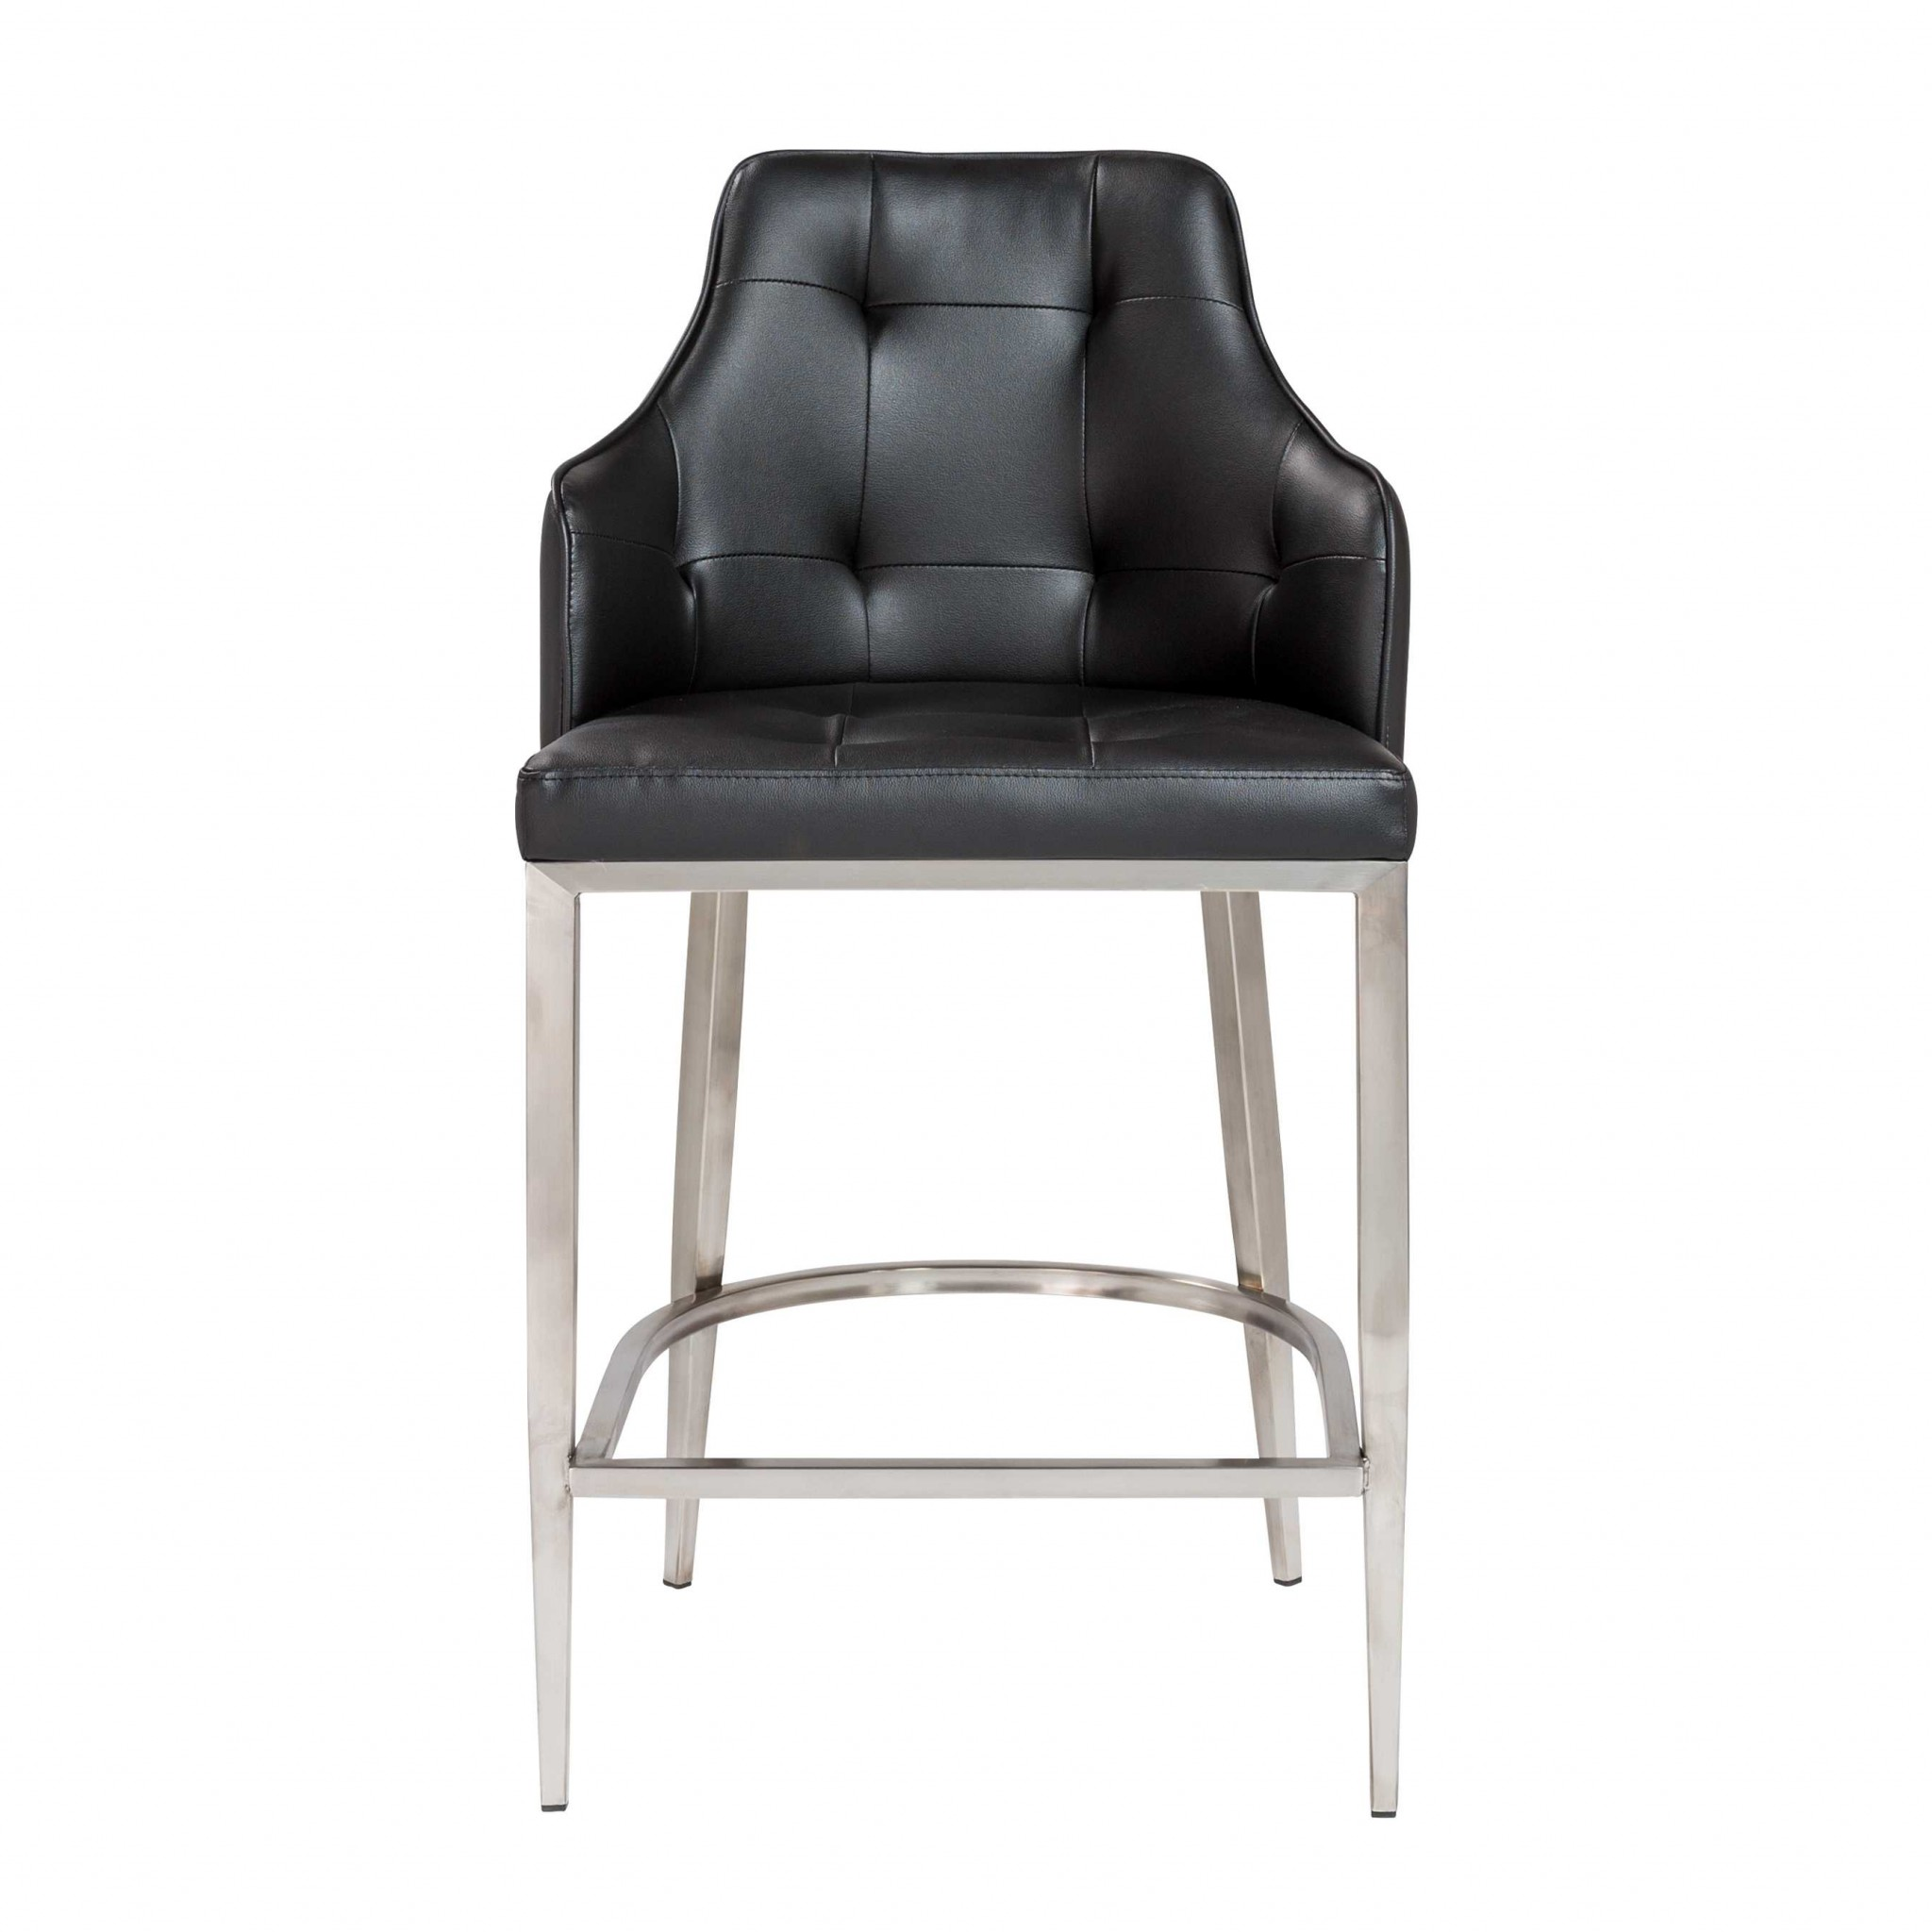 """22.05"""" X 23.63"""" X 38.98"""" Black Leatherette Counter Stool with Brushed Stainless Steel Legs"""